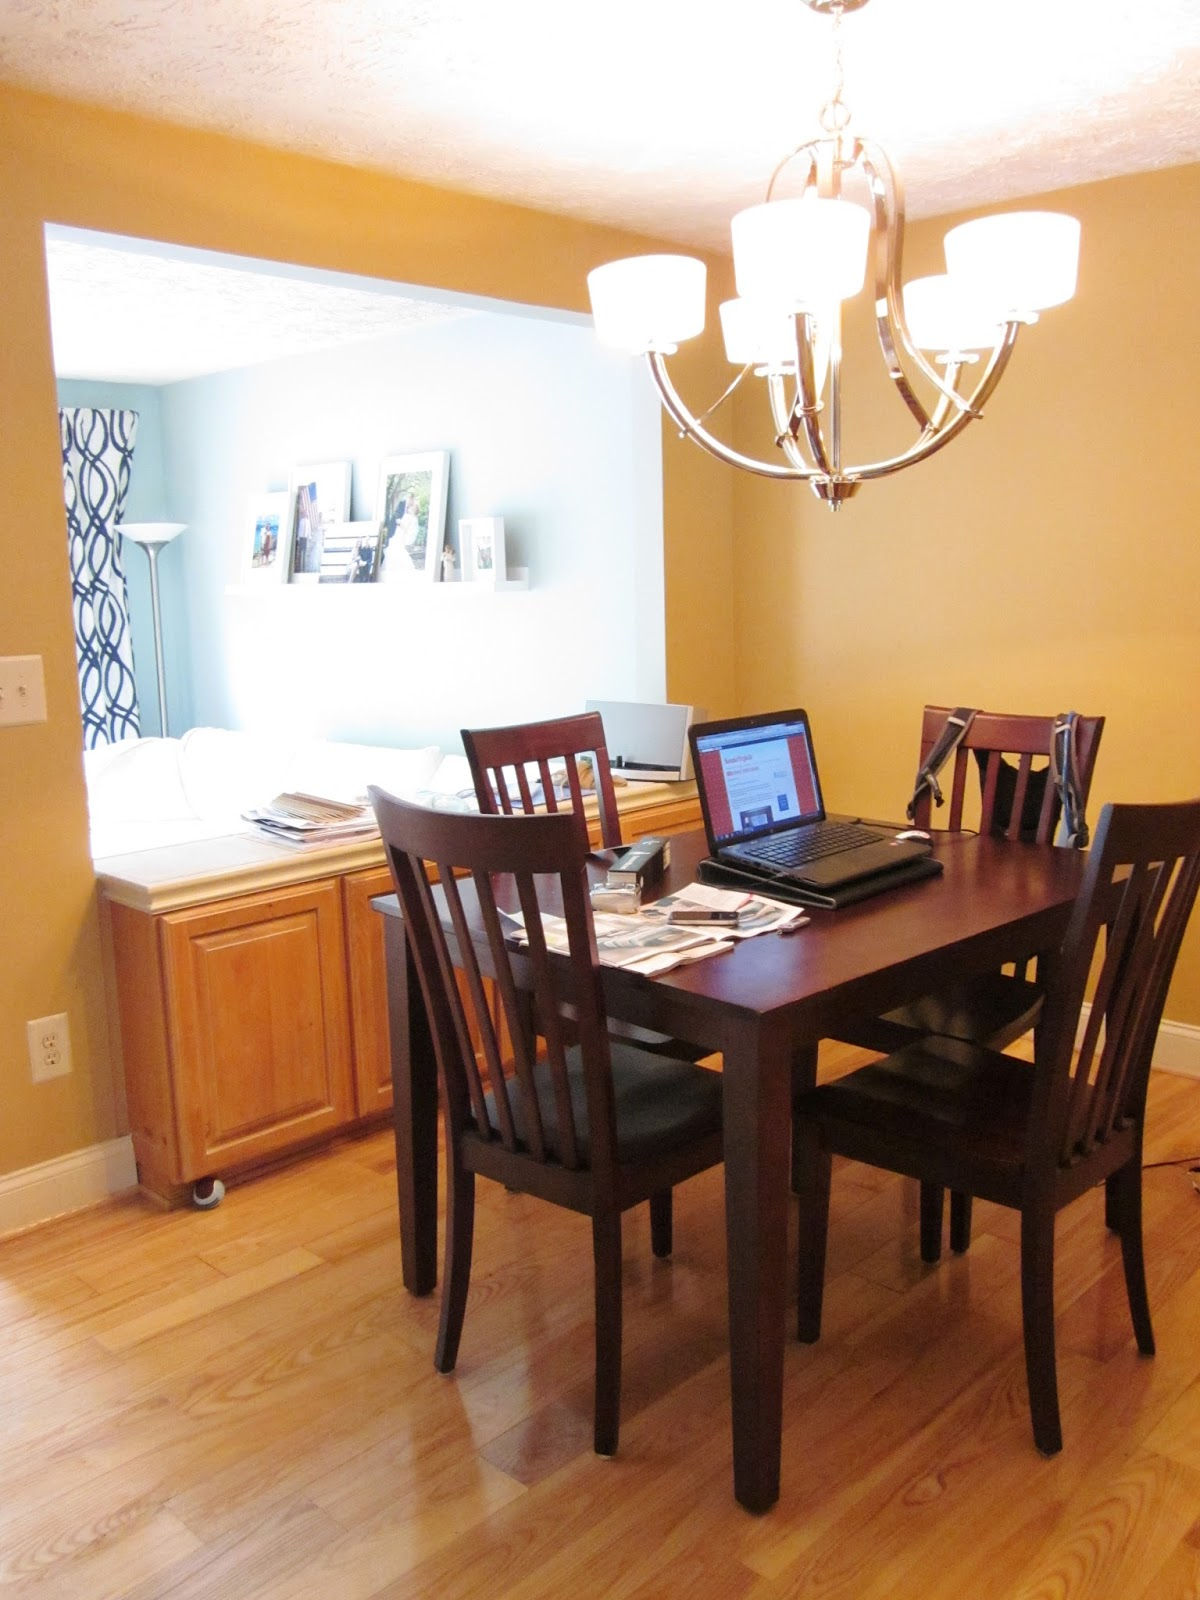 Bonnieprojects Choosing Paint Colors: BonnieProjects: Dining Room Update: Painted Walls + Trim